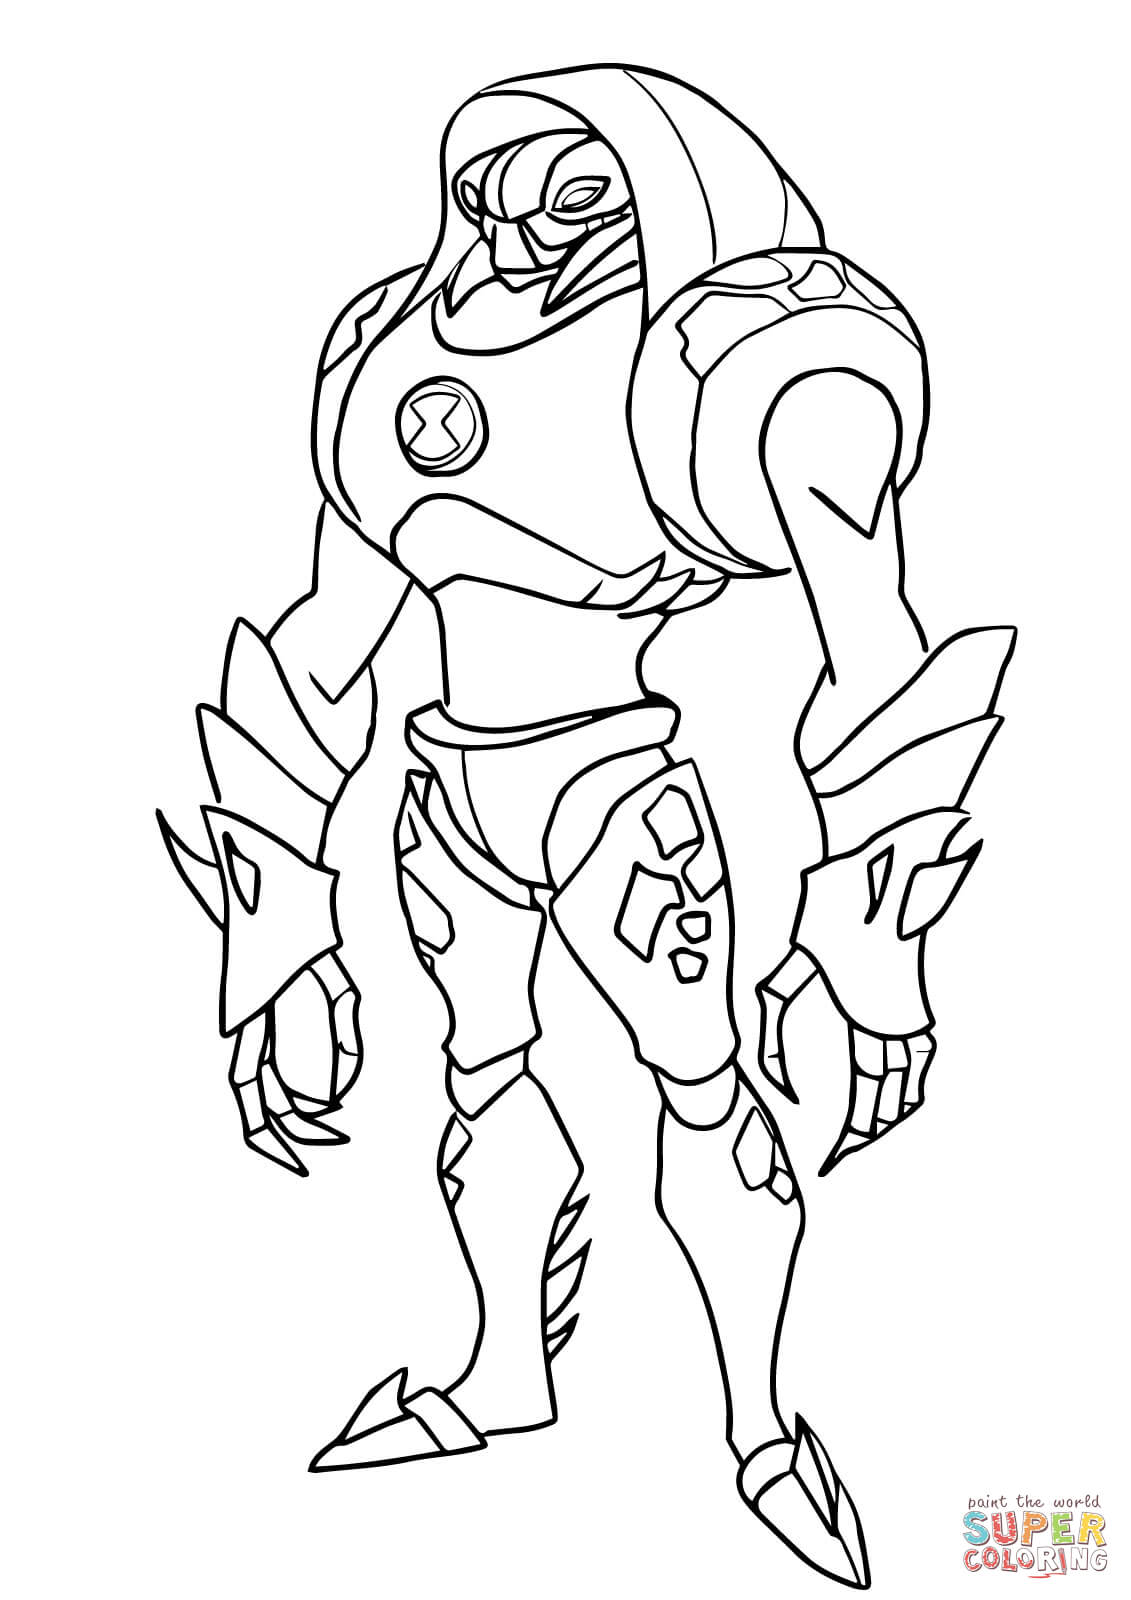 Ben 10 Water Hazard Coloring Page